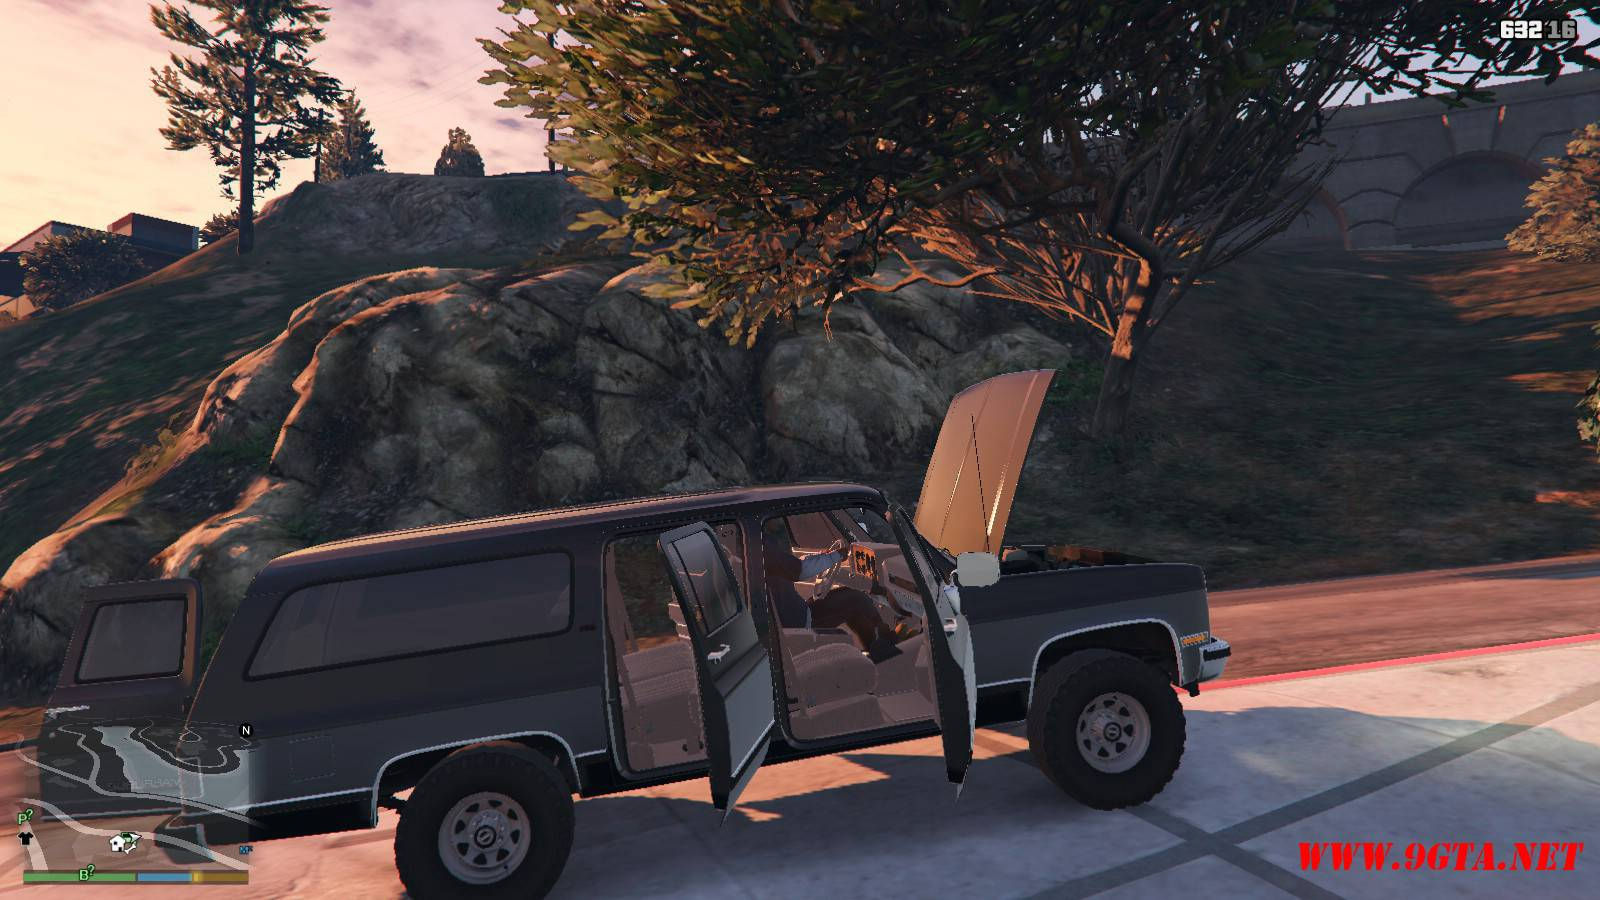 1989 GMC Suburban Mod For GTA 5 (15)